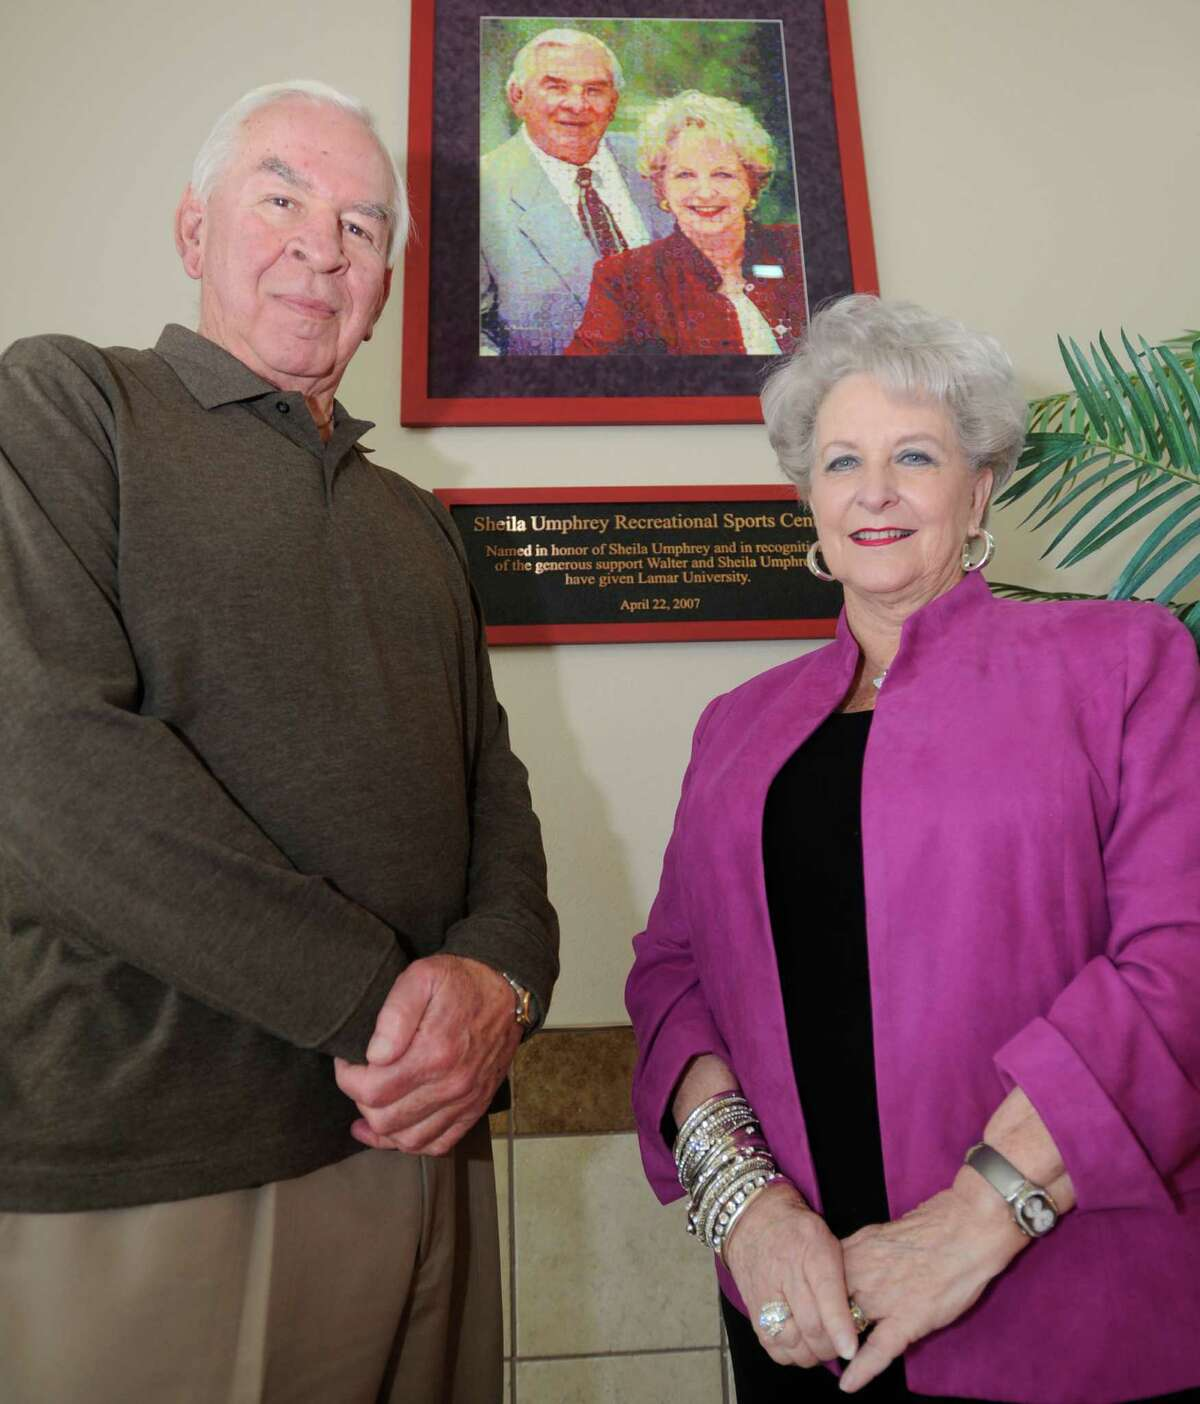 Sheila and Walter Humphrey are local philanthropists in the area, who donated $5 million in 2005 to Lamar University towards the construction of the Sheila Umphrey Recreational Center on Lamar's campus. Dave Ryan/The Enterprise